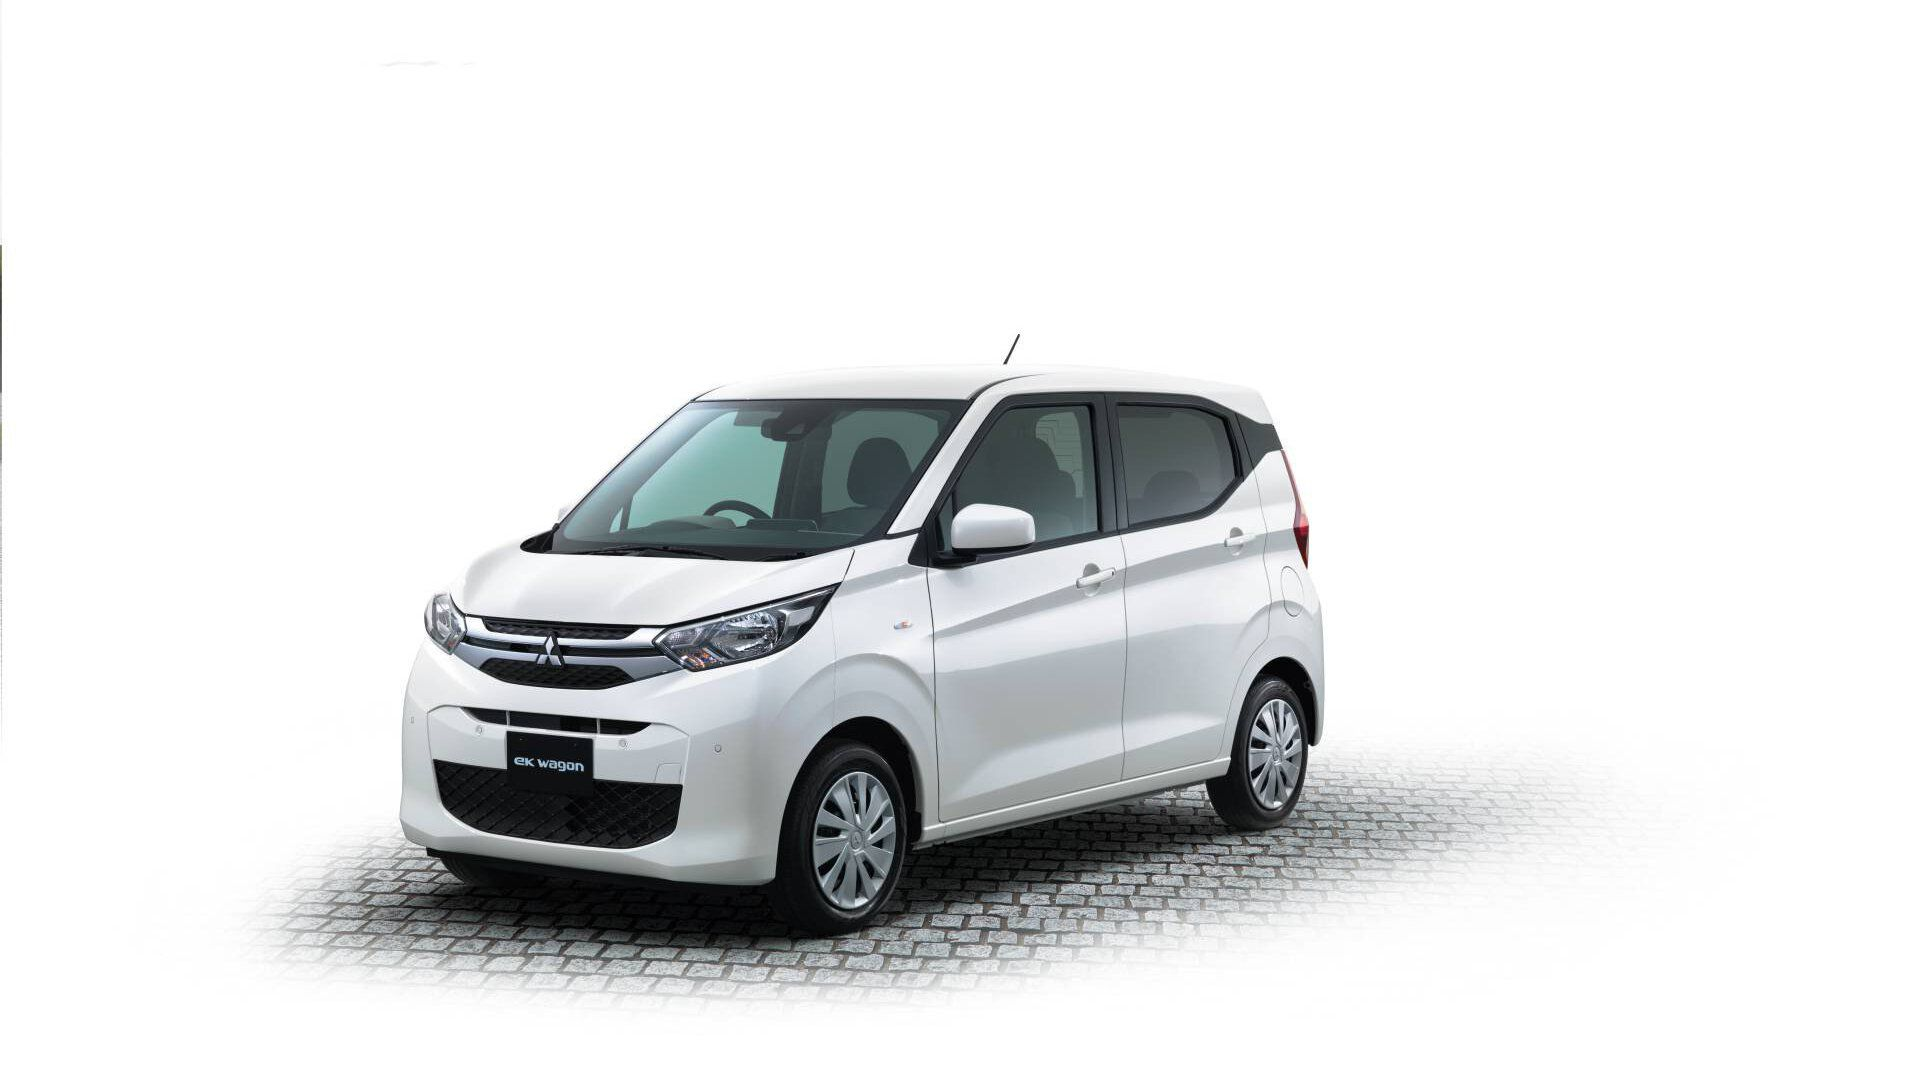 2019 mitsubishi ek wagon and ek x kei cars detailed as